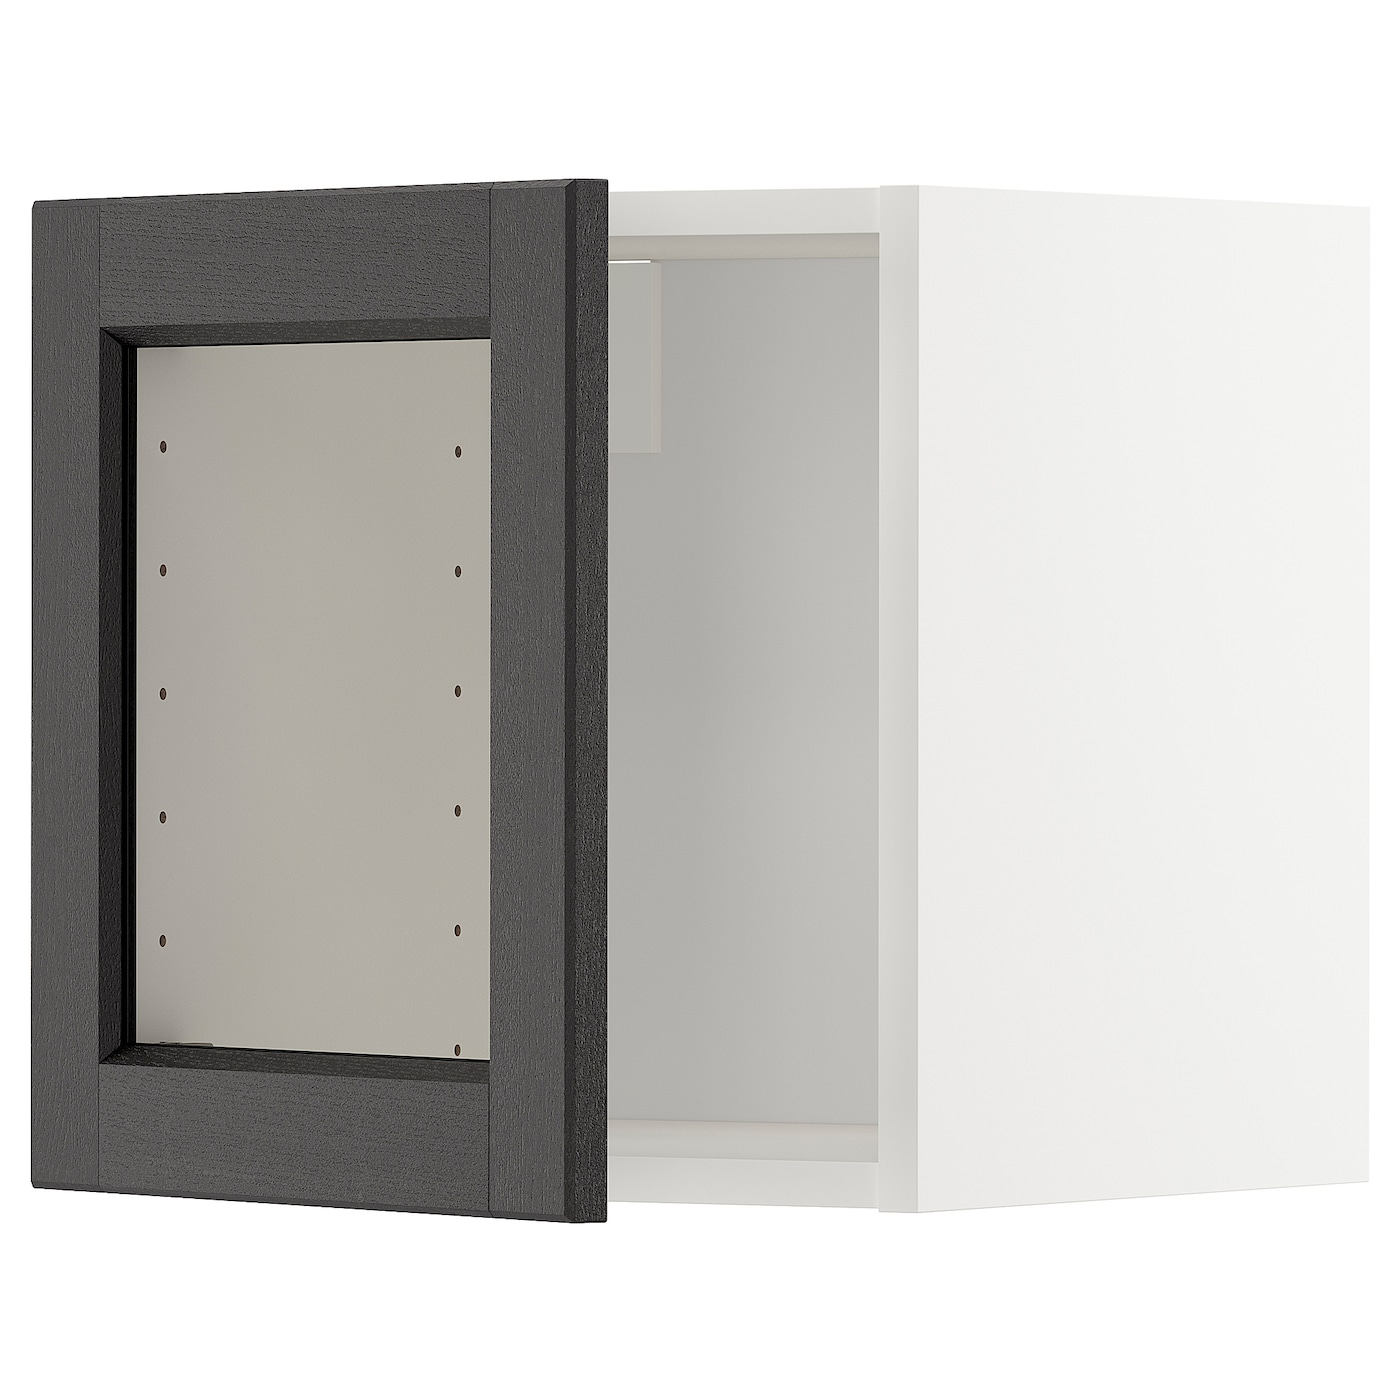 Ikea Metod Wall Cabinet With Gl Door You Can Choose To Mount The On